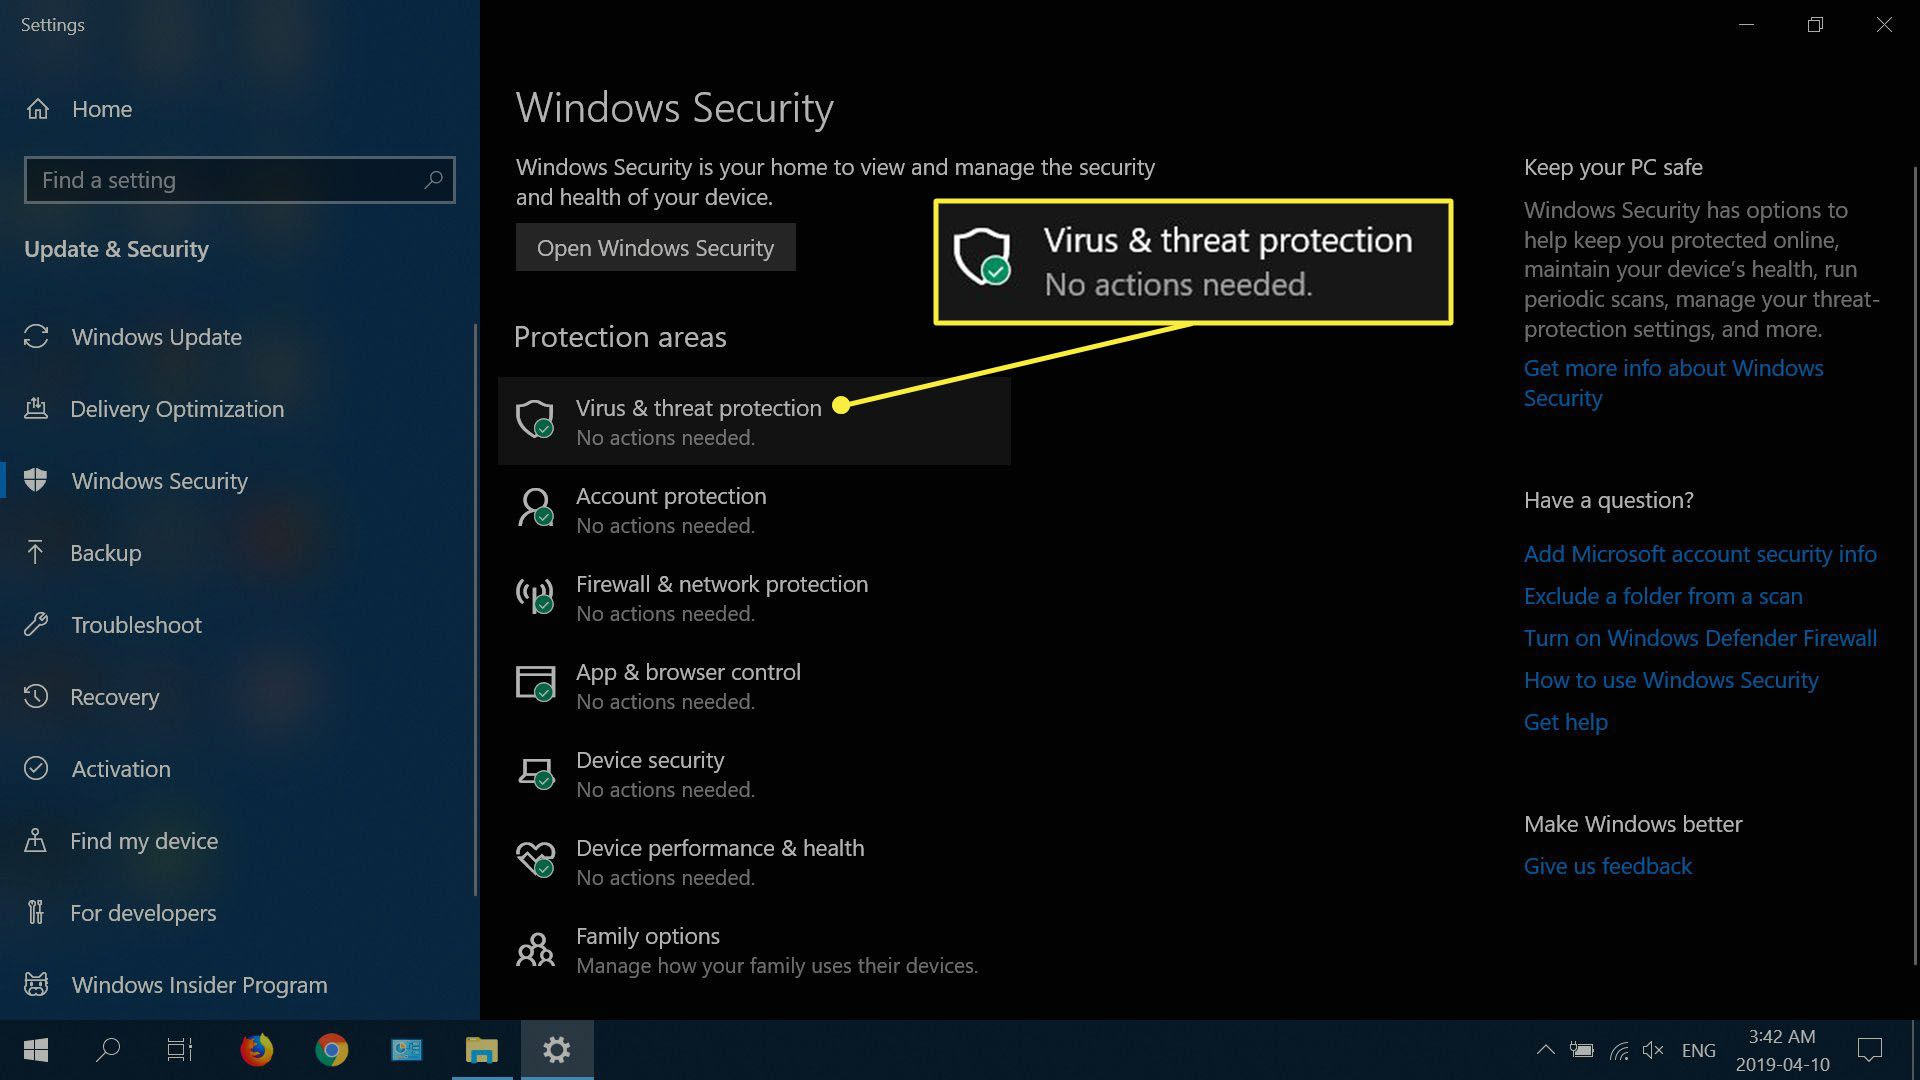 Select Virus & threat protection in the Windows Security options for Windows 10.